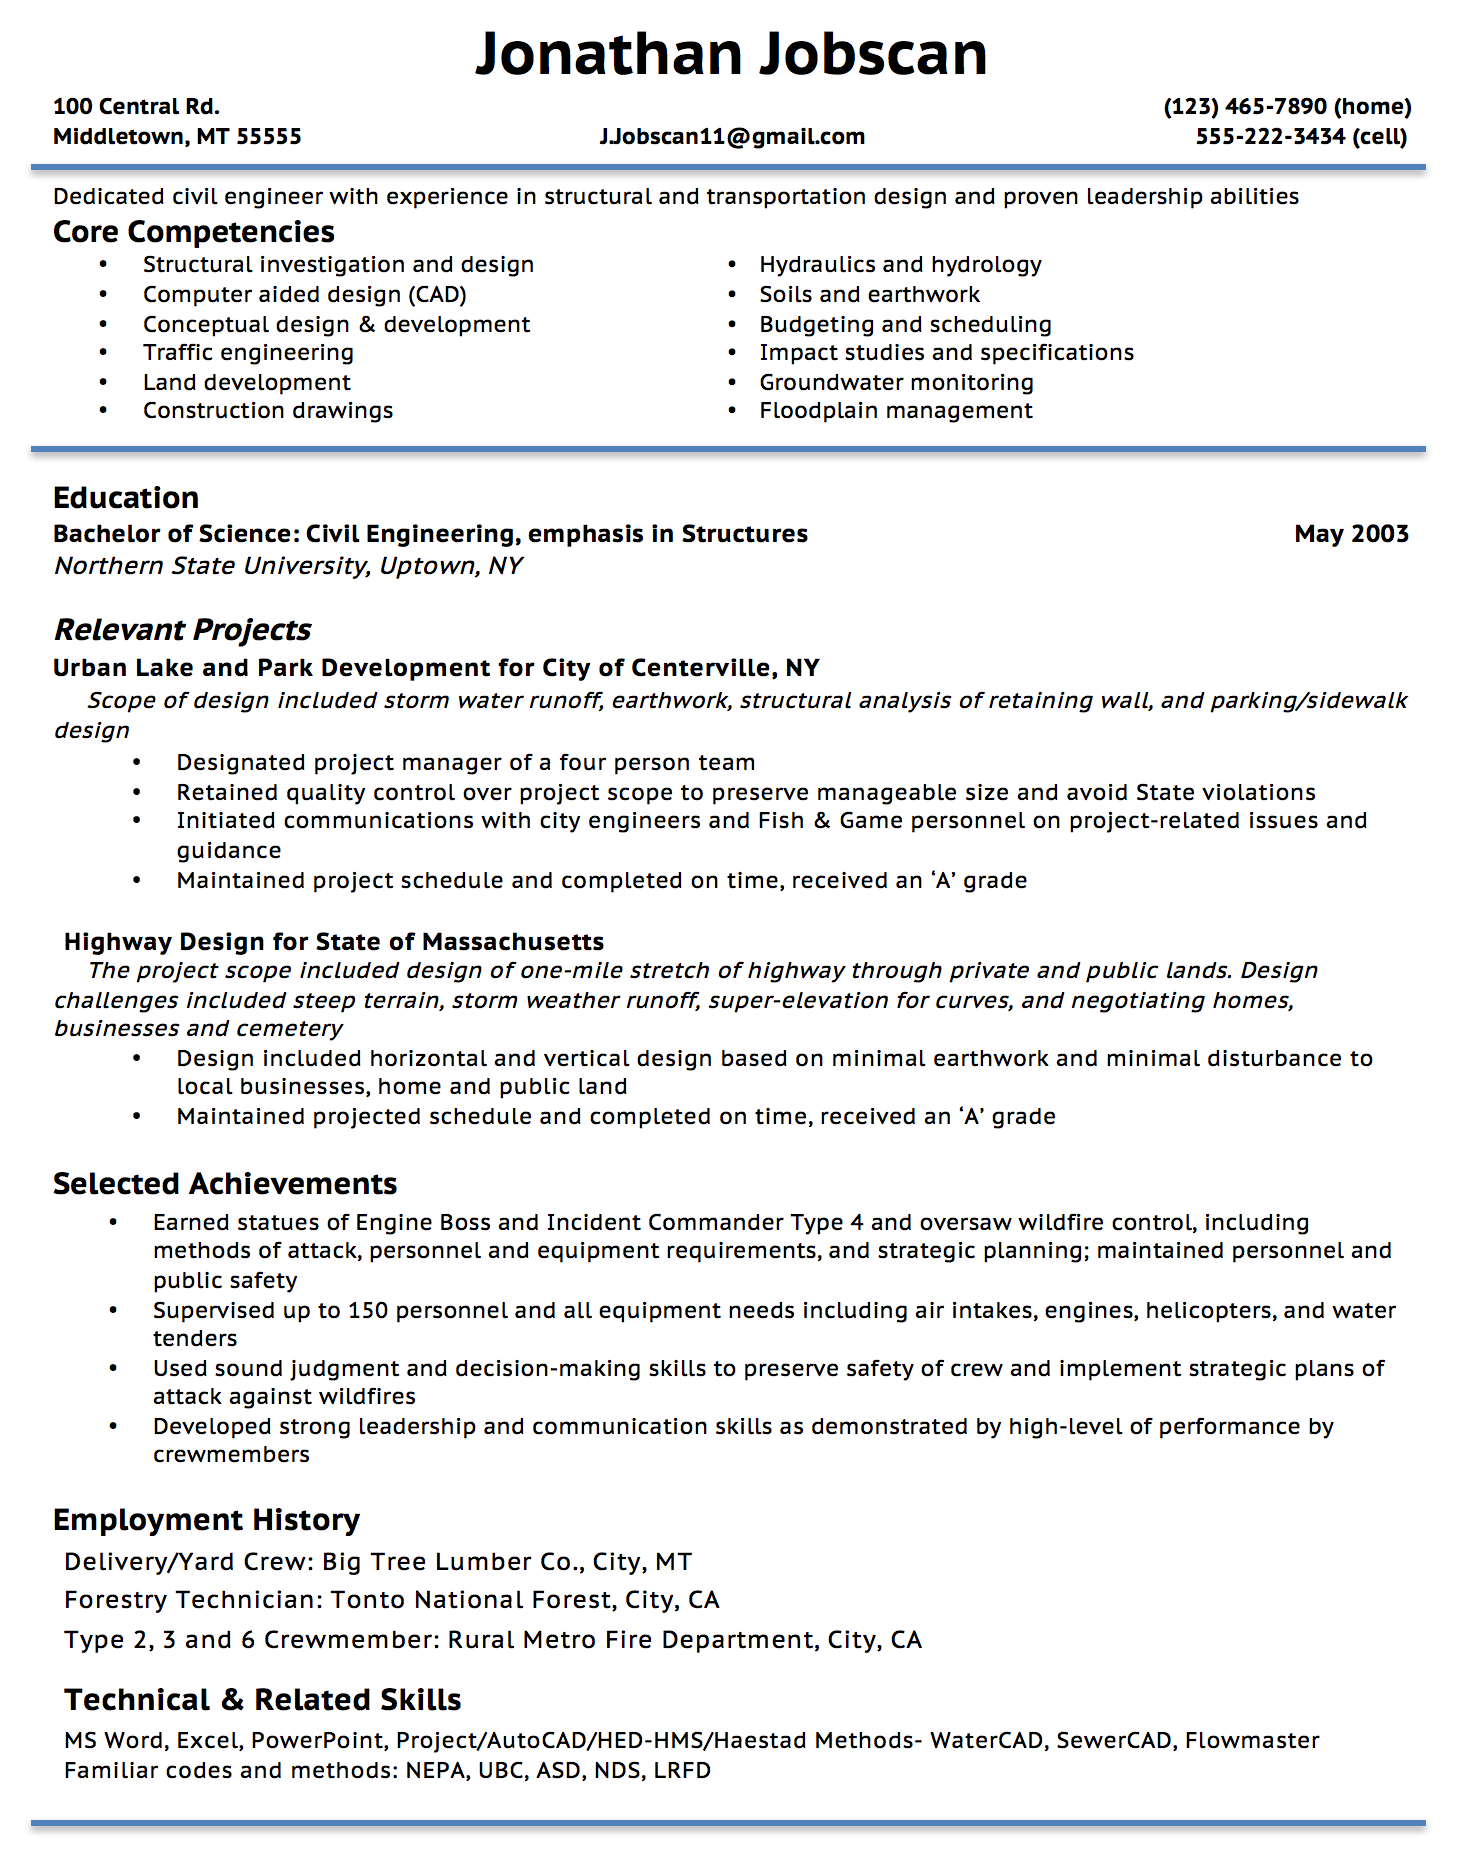 Opposenewapstandardsus  Outstanding Resume Writing Guide  Jobscan With Entrancing Example Of A Functional Resume Format With Alluring Resumes For High School Graduates Also Key Skills For Resume In Addition Burger King Resume And Administrative Coordinator Resume As Well As College Student Resume For Internship Additionally Best Resumes Format From Jobscanco With Opposenewapstandardsus  Entrancing Resume Writing Guide  Jobscan With Alluring Example Of A Functional Resume Format And Outstanding Resumes For High School Graduates Also Key Skills For Resume In Addition Burger King Resume From Jobscanco